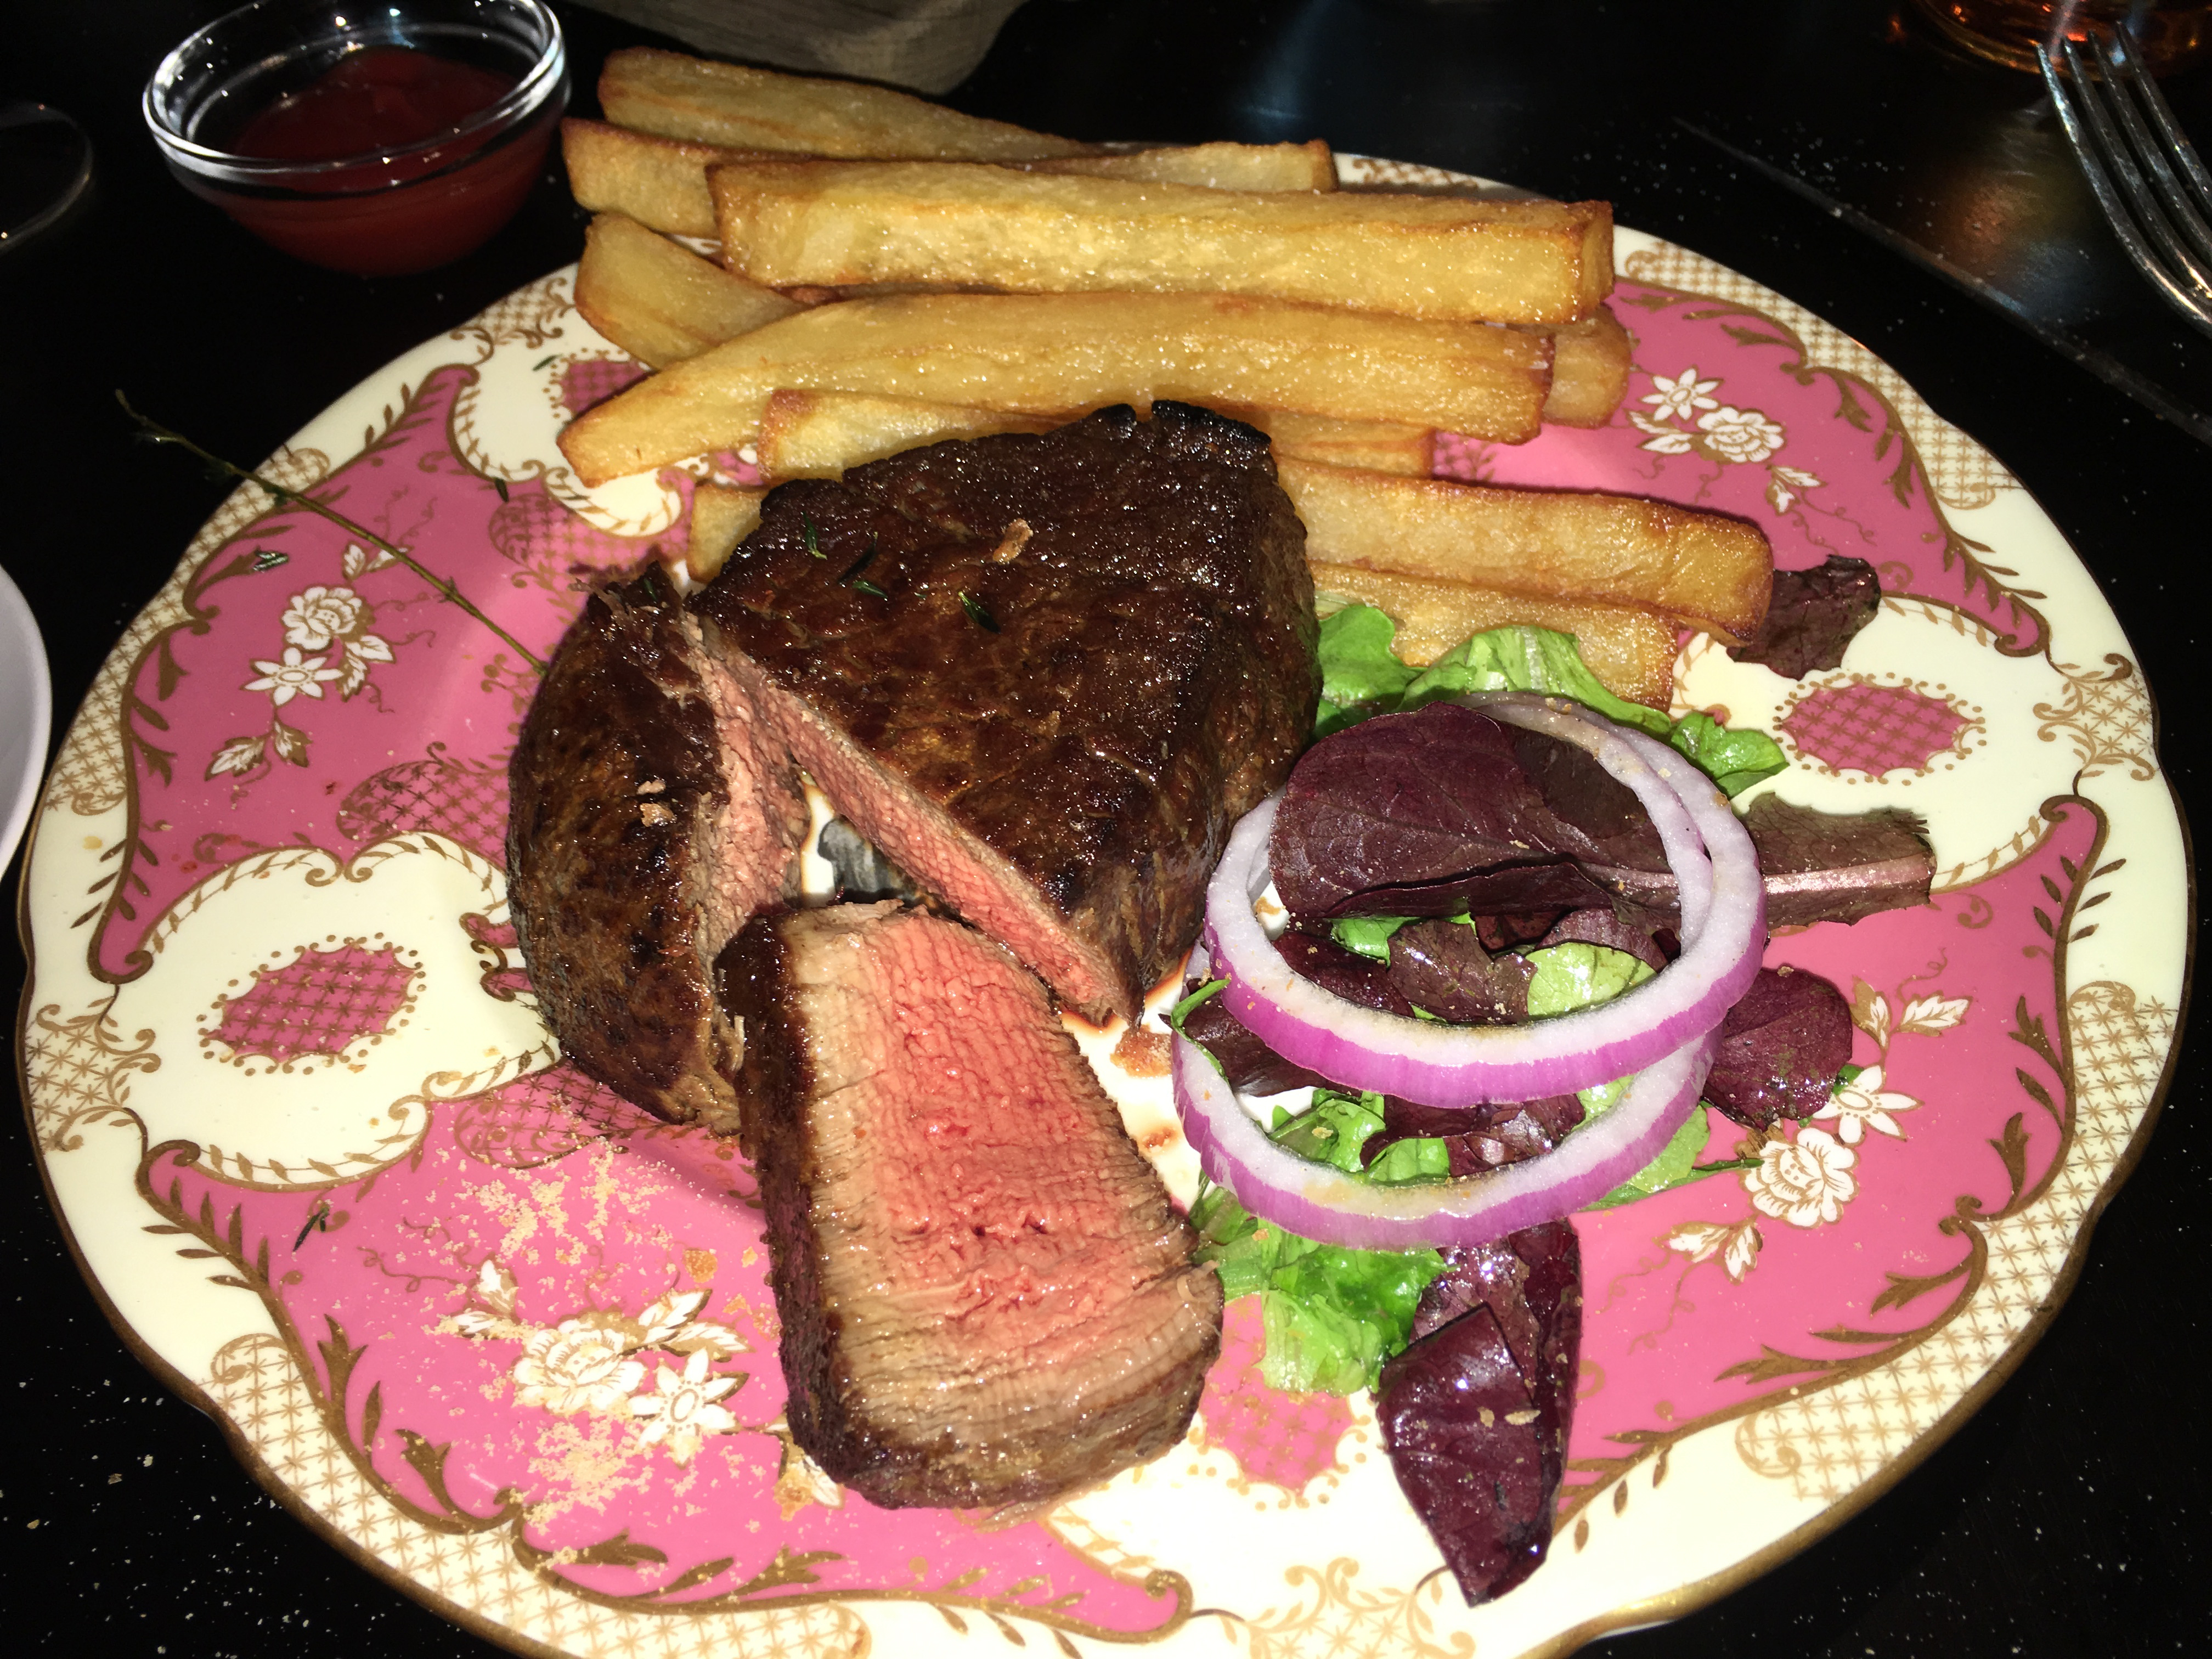 Fillet mignon at The Clocktower